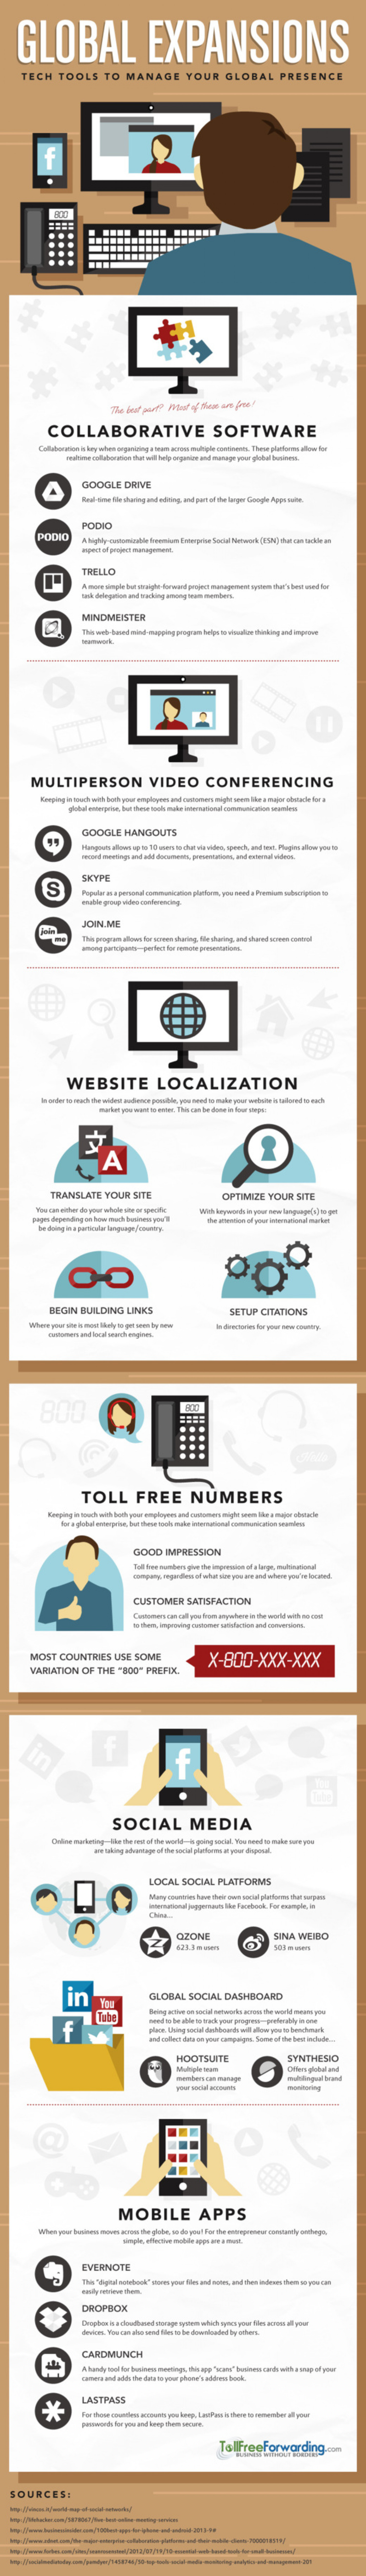 Global Expansions: Tech Tools to Manage your Global Presence Infographic